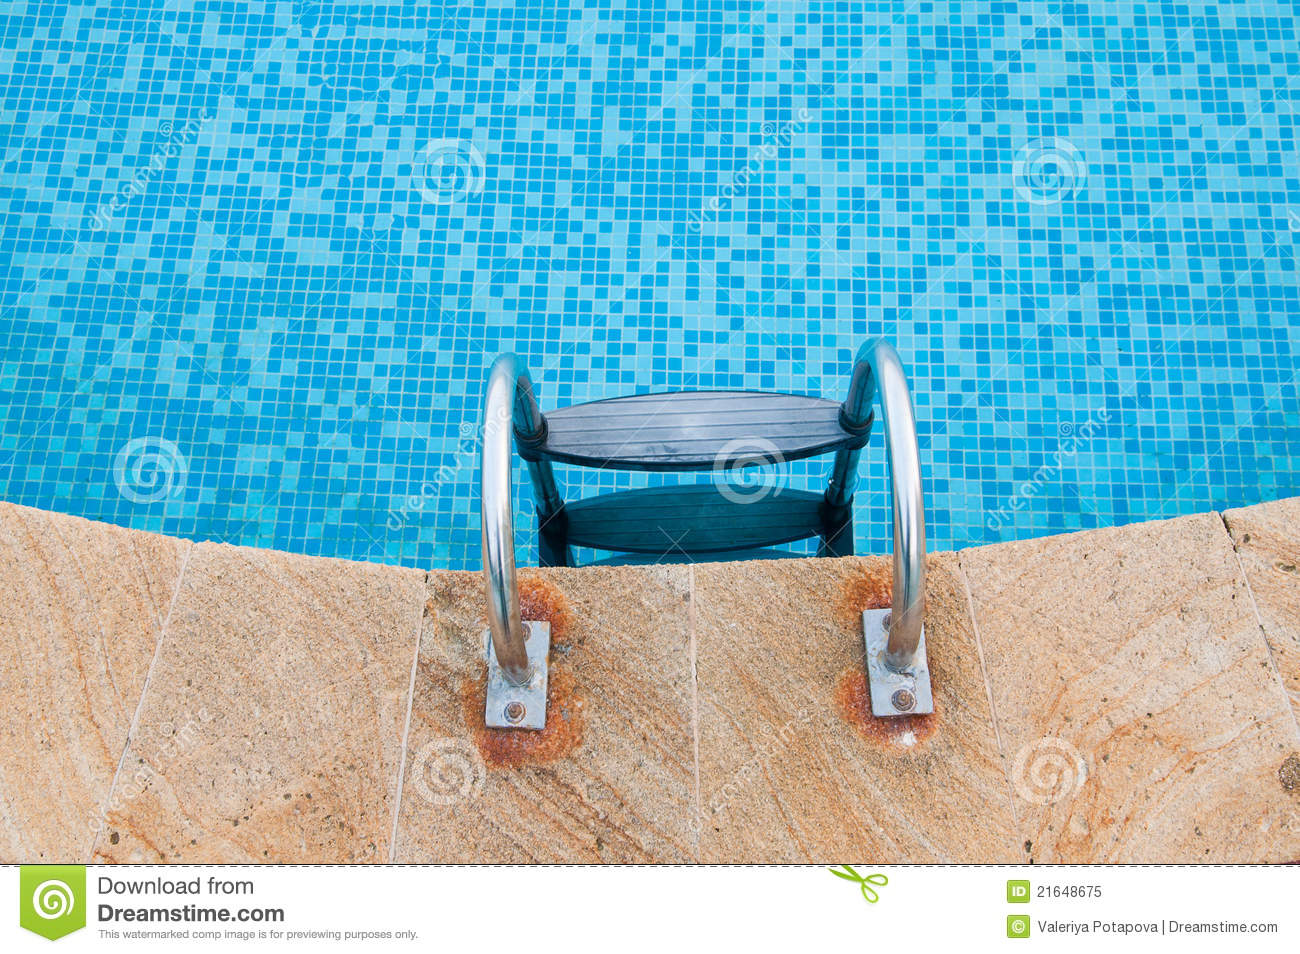 Poolandspatv How To Close A Swimming Pool How To Video Party Invitations Ideas